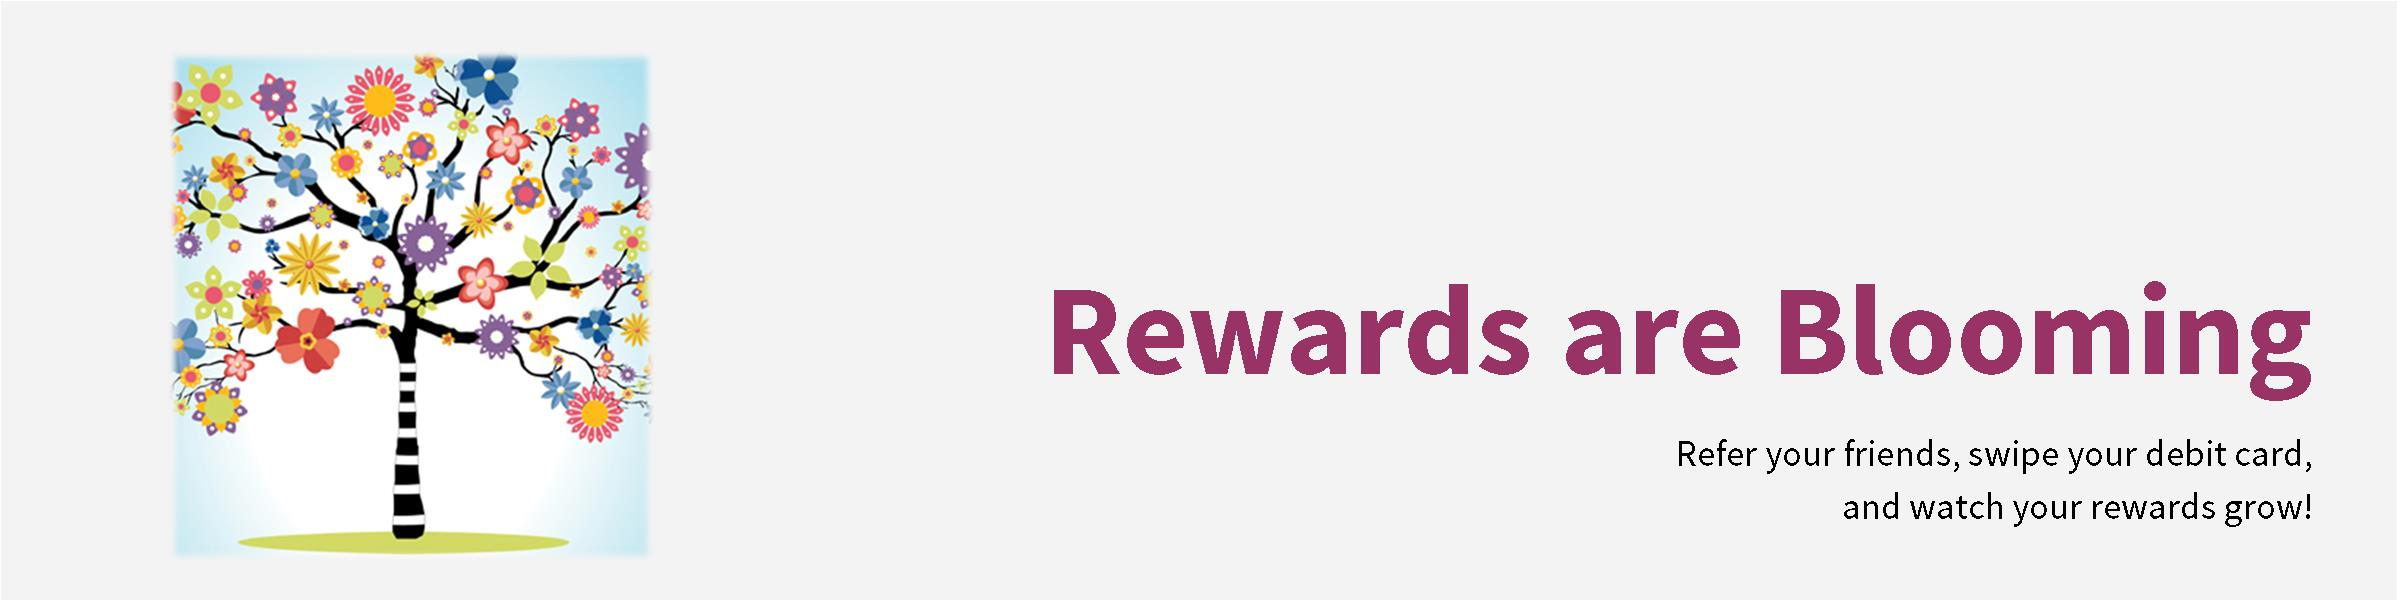 Rewards are blooming. Refer your friends, swipe your debit card, and watch your rewards grow!